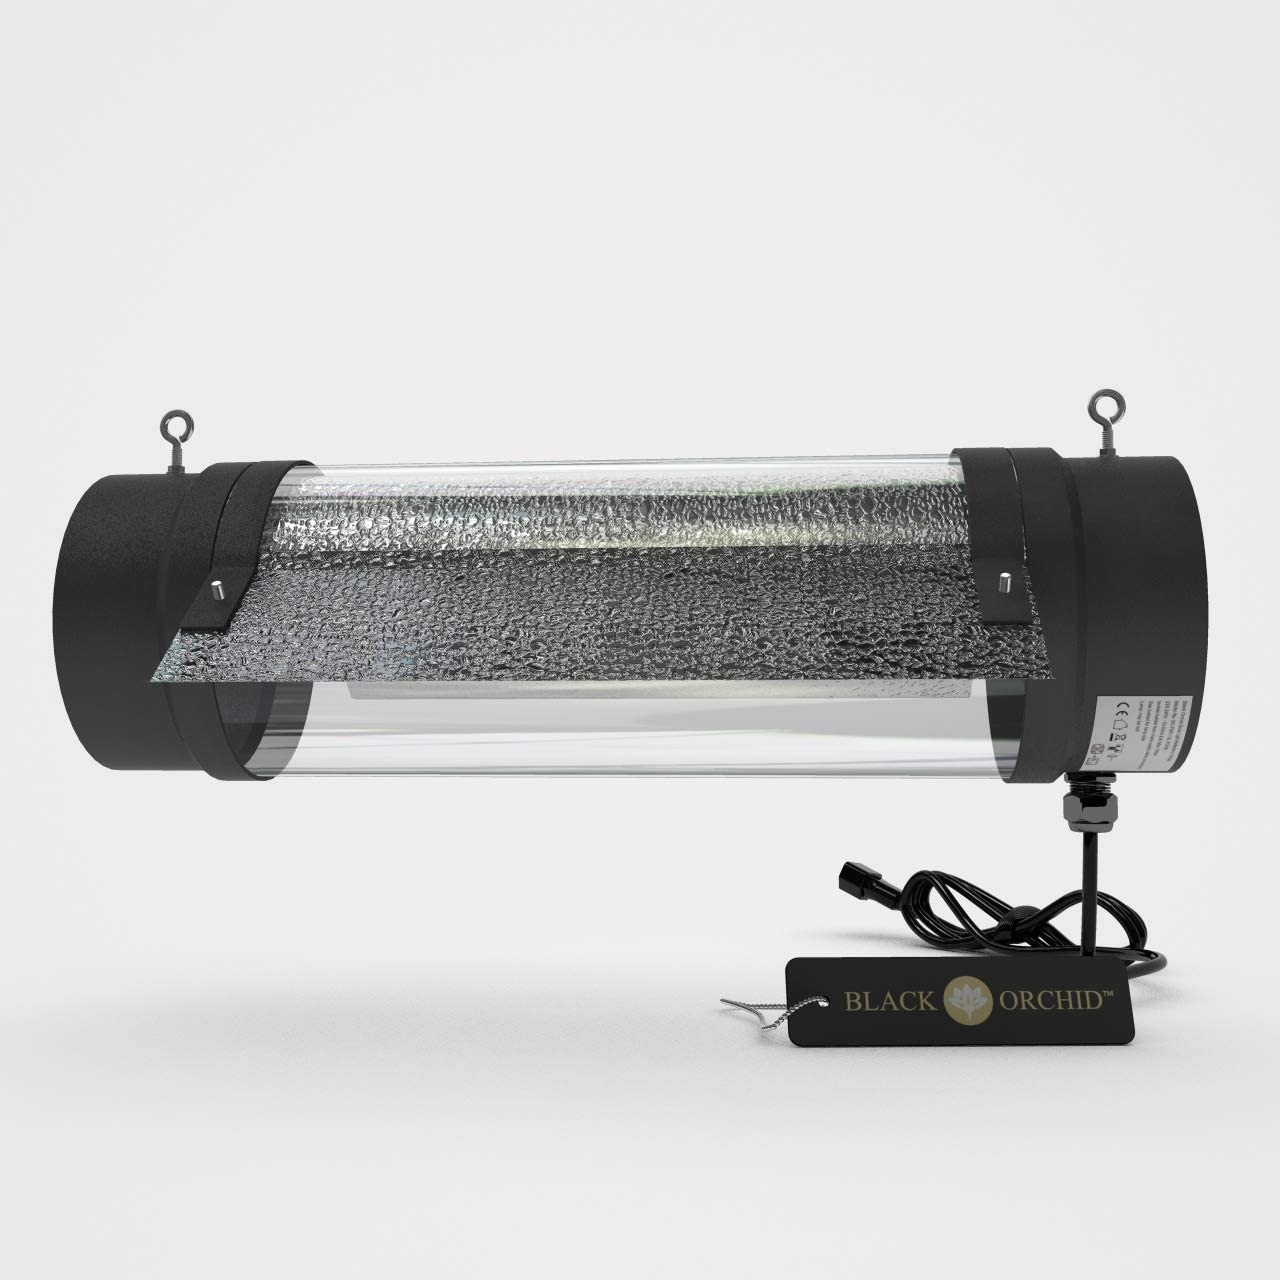 Hydrus Cool Tube Shade Grow Room Tent Hydroponic Lighting Reflector Air Cooled 125mm 5 150mm 6 150mm 6